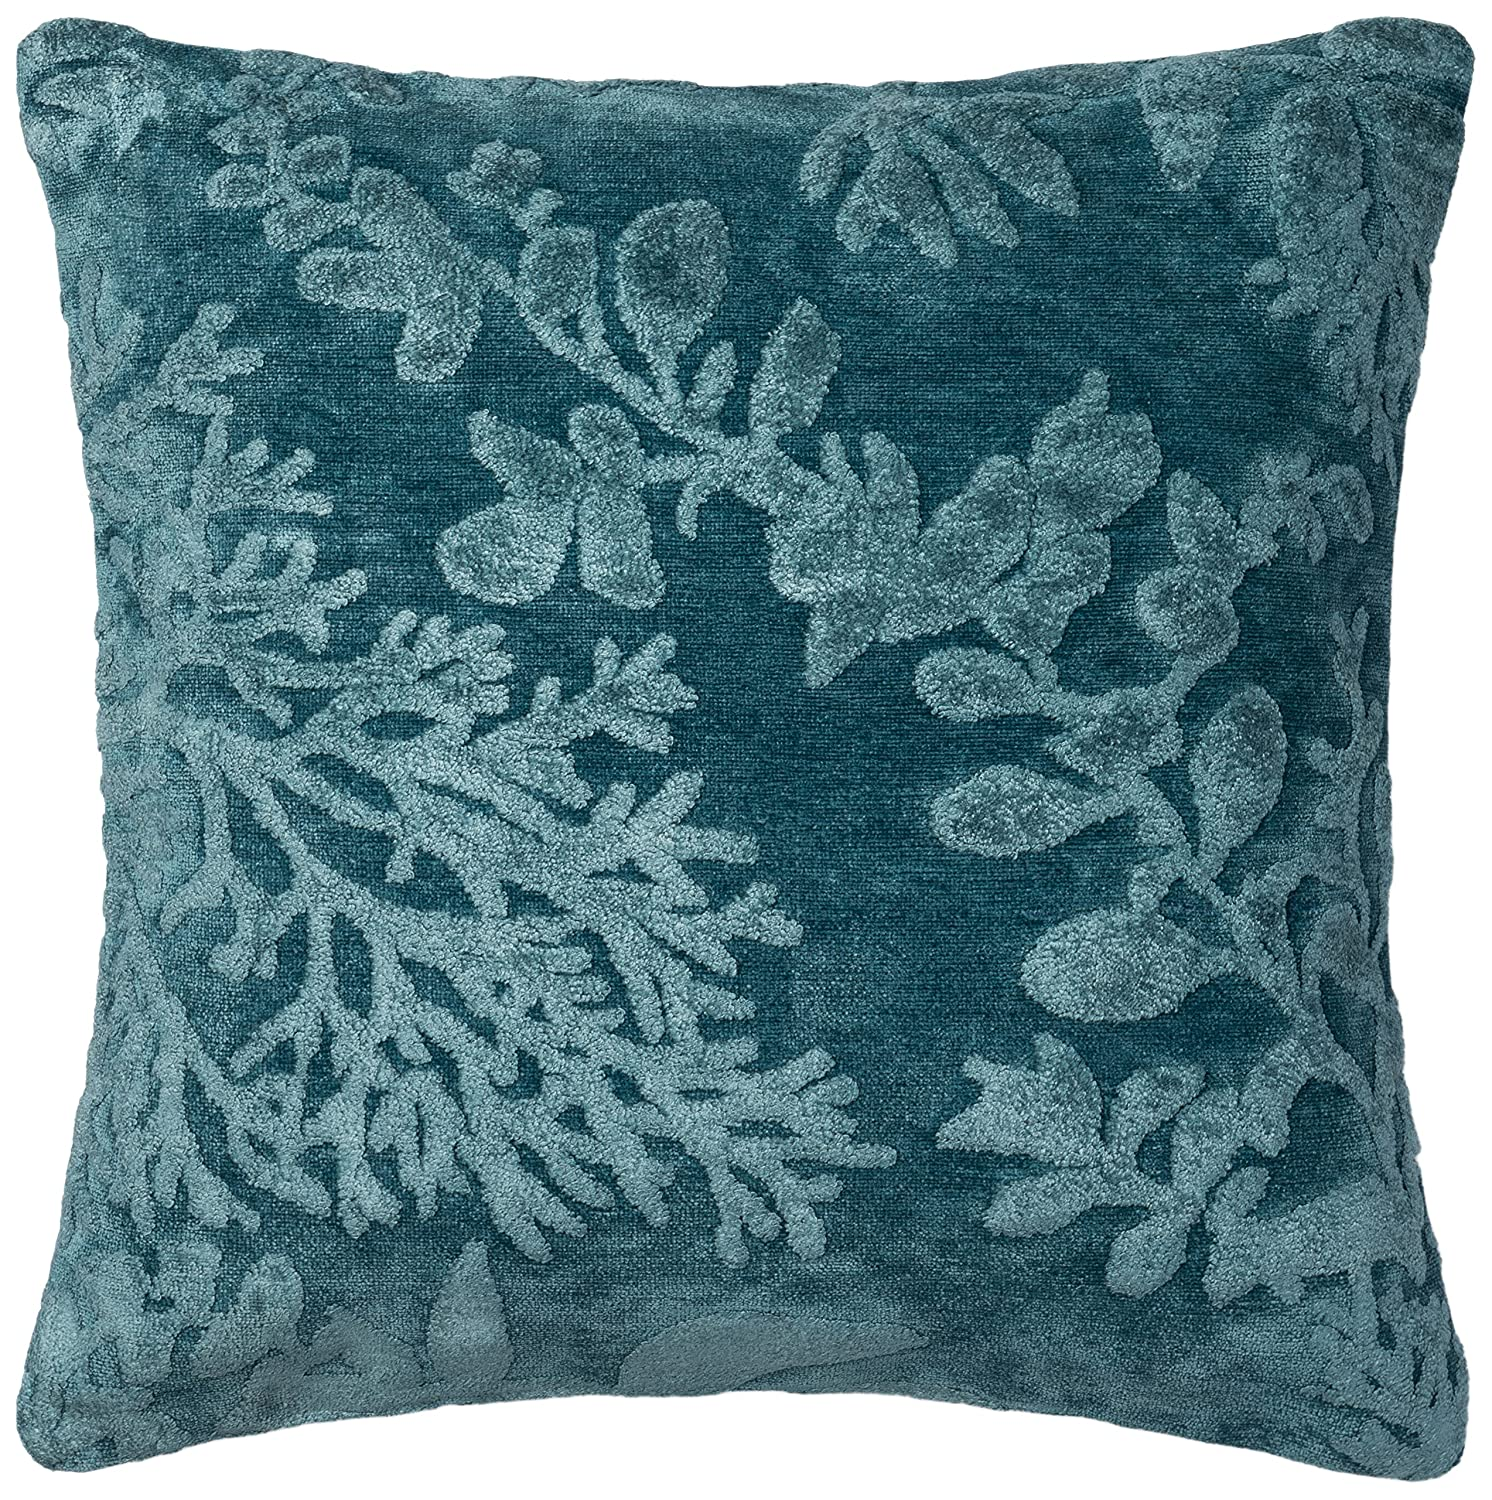 """Loloi GPI03 Cotton and Viscose/Polyester Pillow Cover, 22"""" x 22"""", Blue/Berry 22"""" x 22"""" P097GPI03BBBYPIL3"""